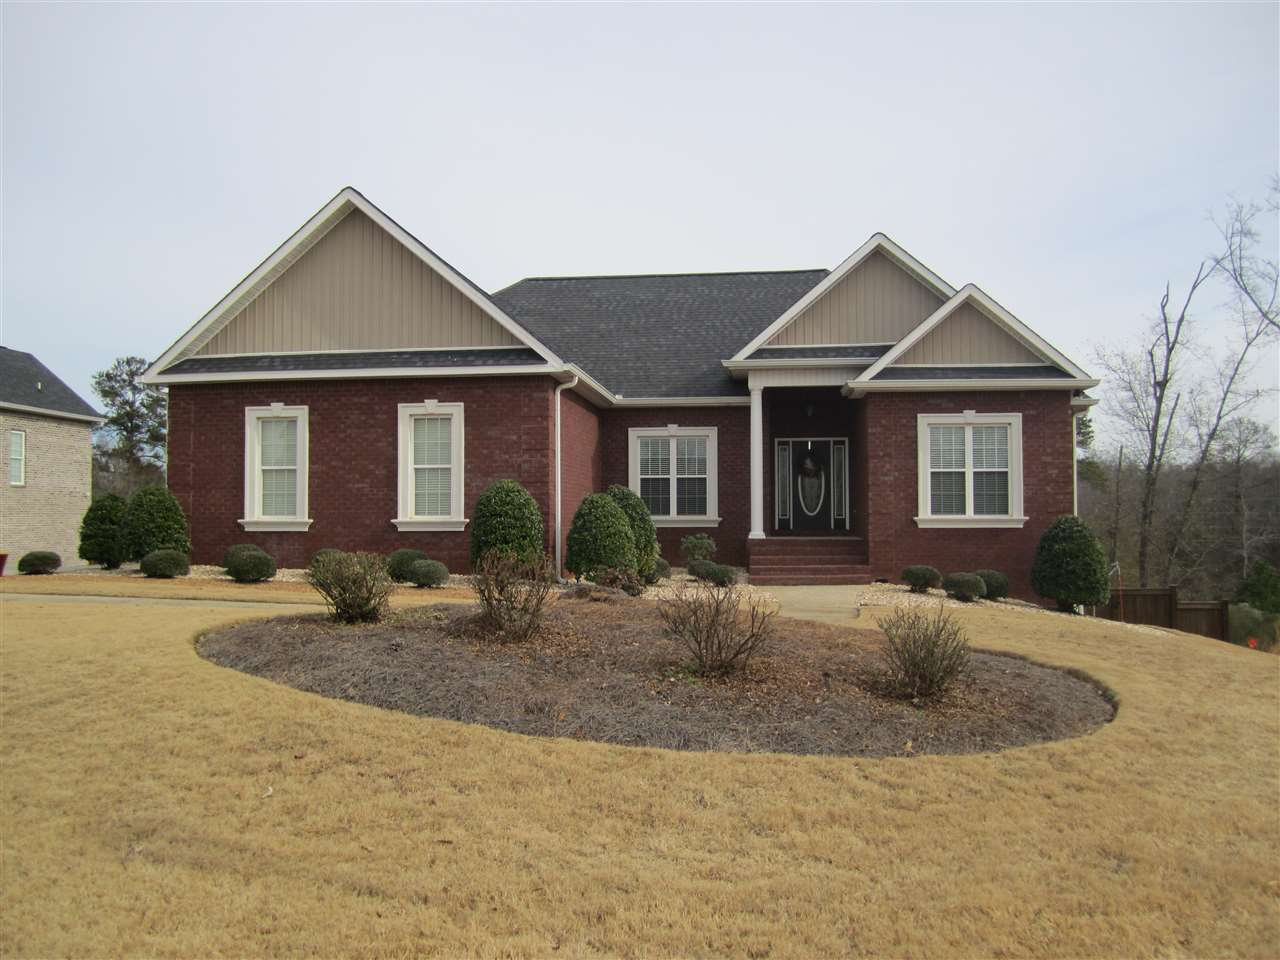 208 Morgan Ranch Circle, Bonaire, GA 31005